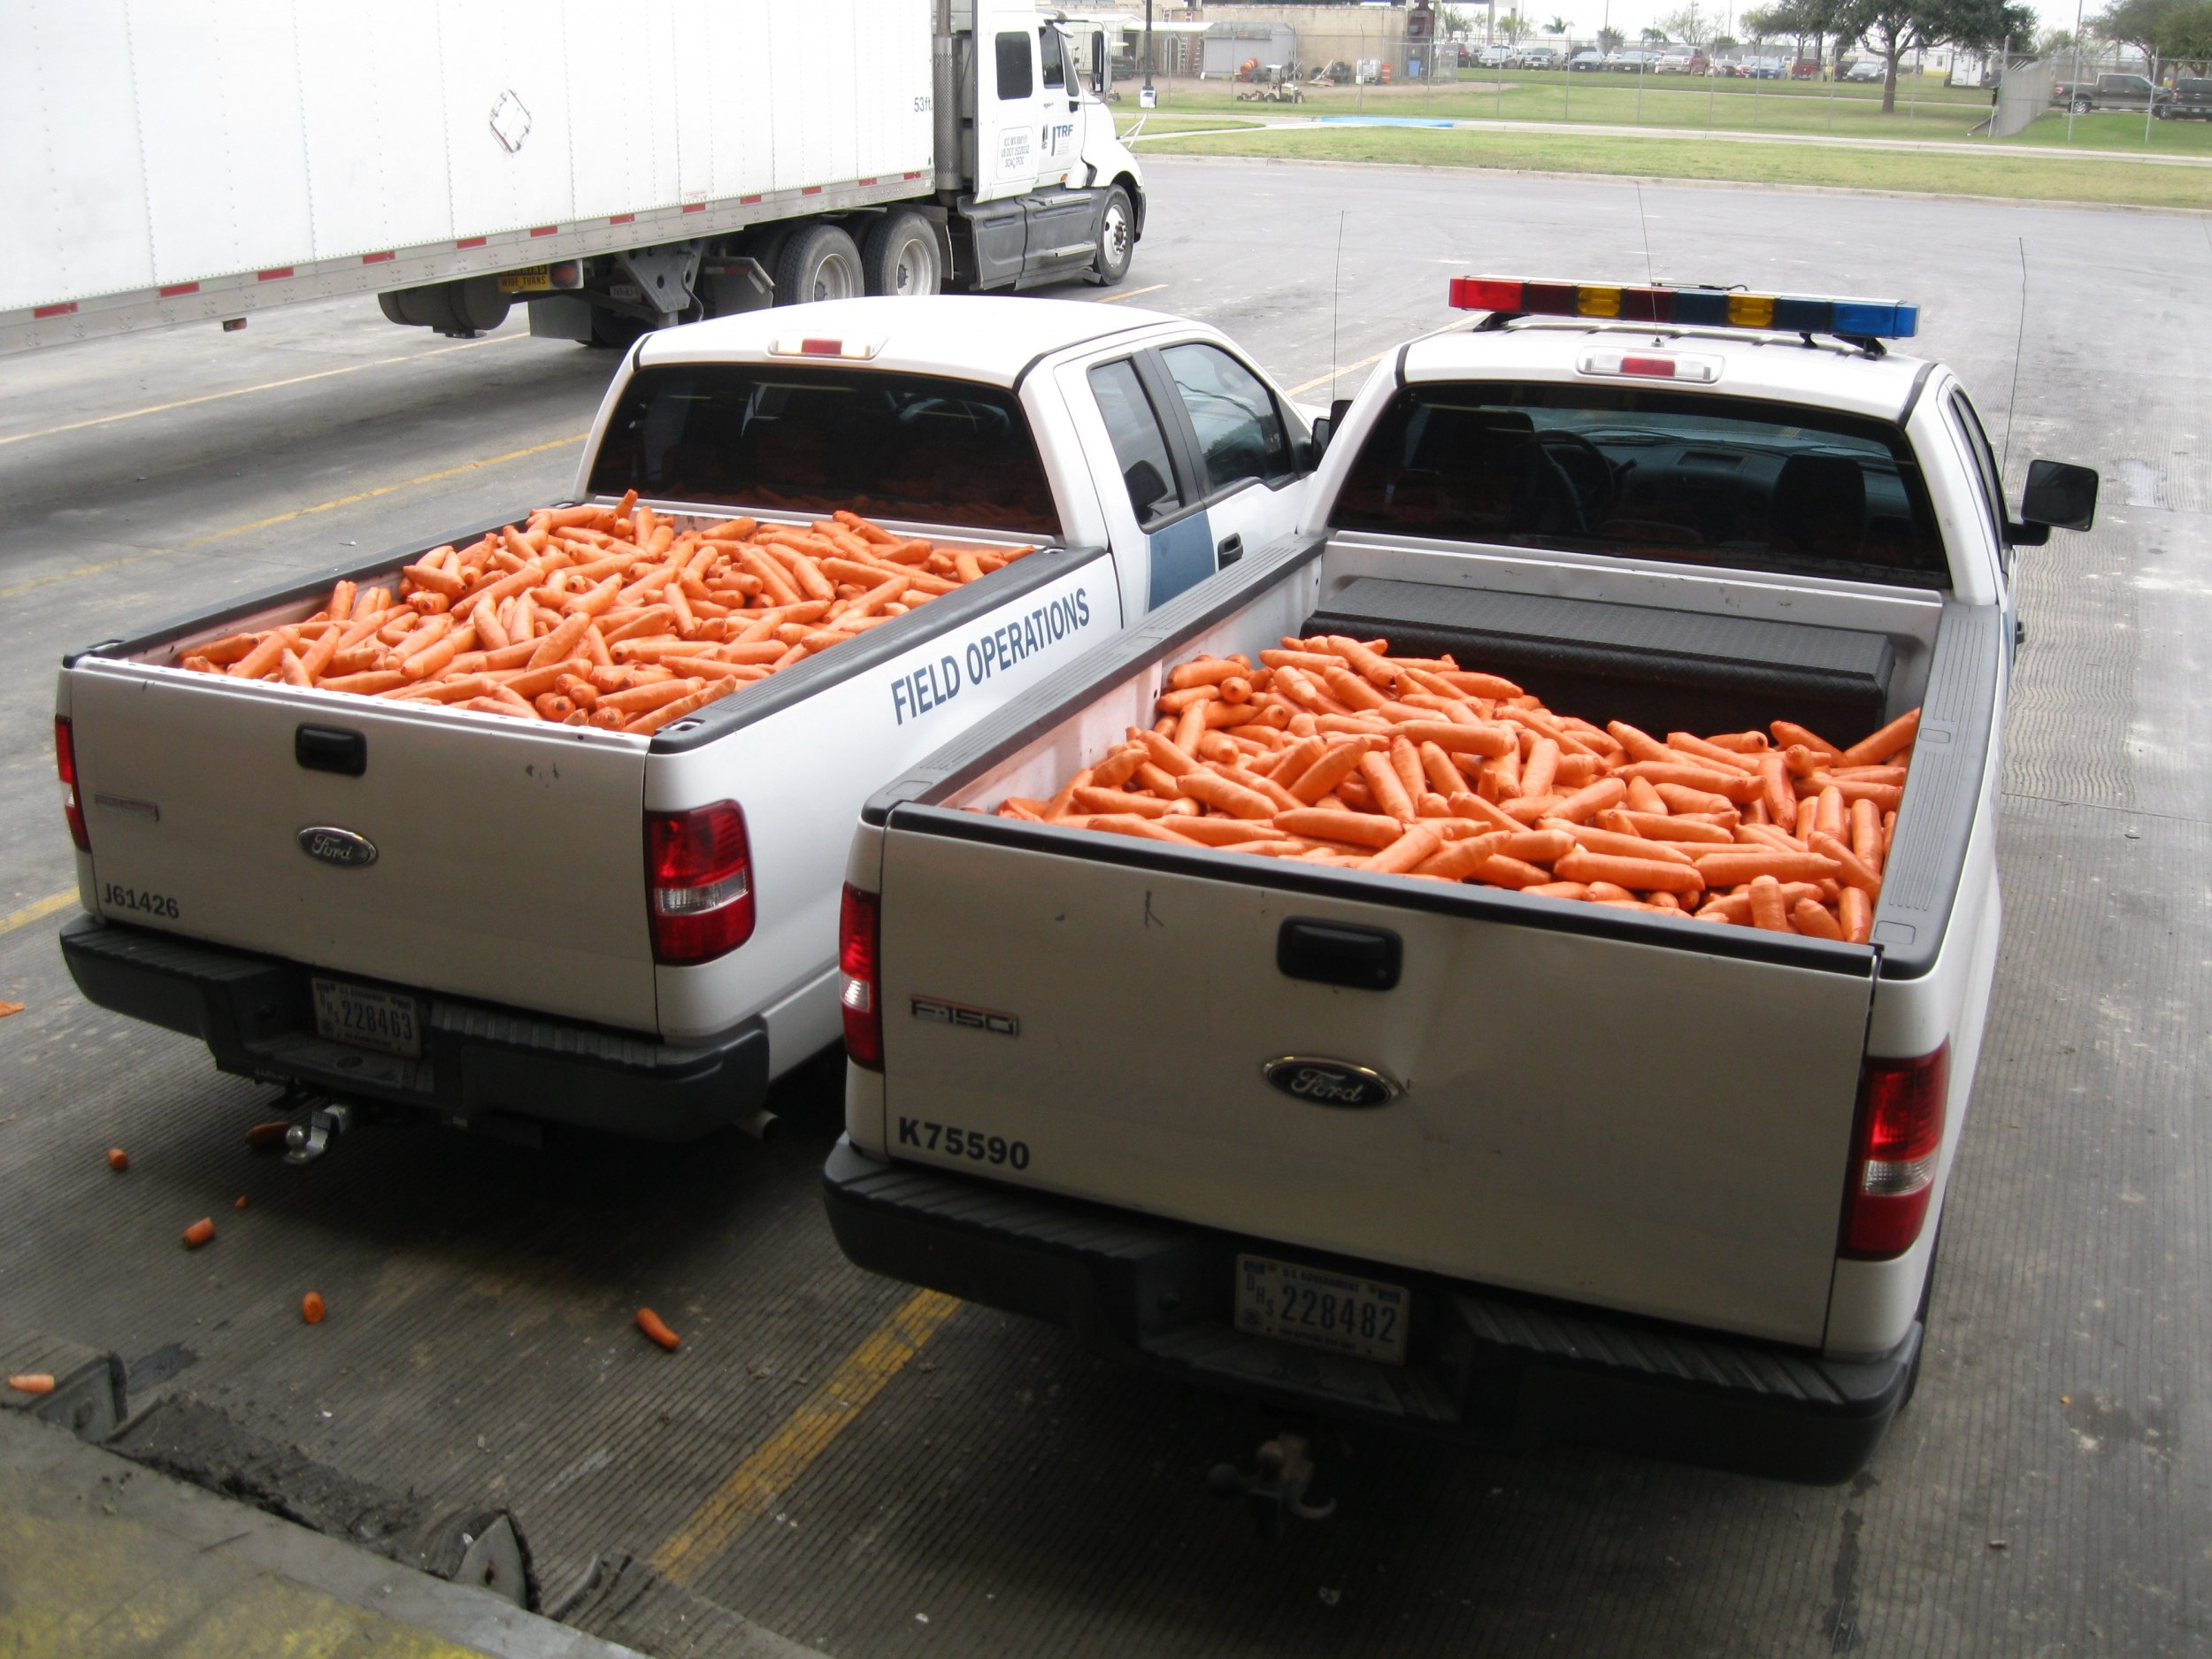 weed carrot mexico shipment cbp_0114